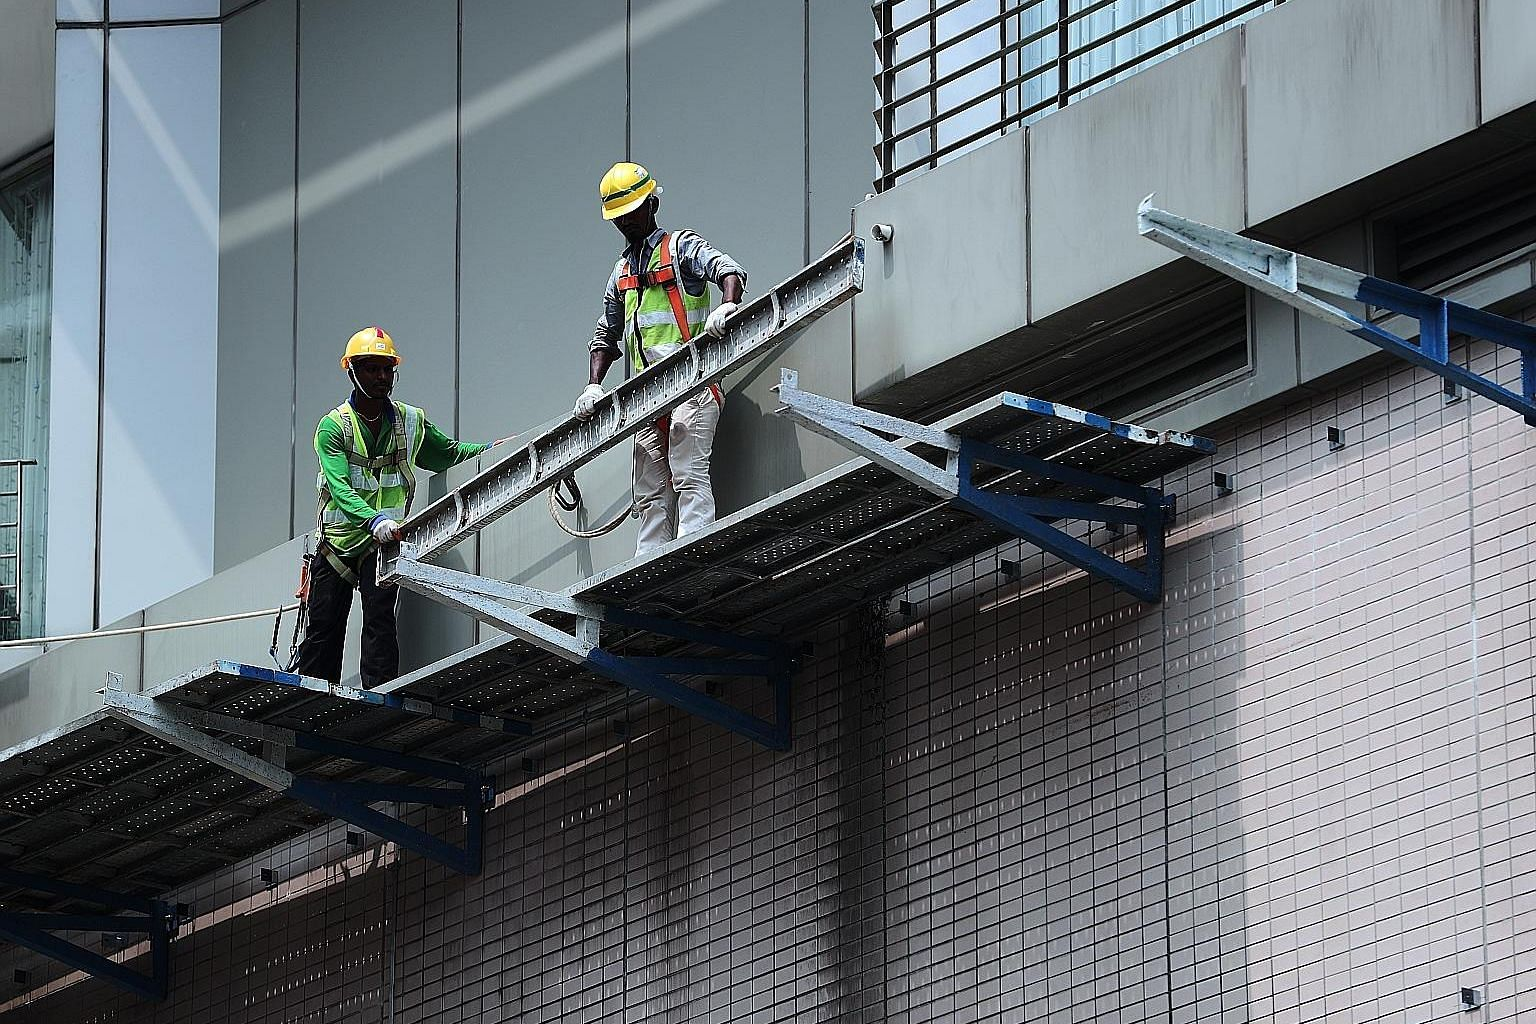 Workers using safety harnesses while working at a height. Last year, eight workers died as a result of a fall from height, down from 24 in 2009. ST PHOTO: KELVIN CHNG